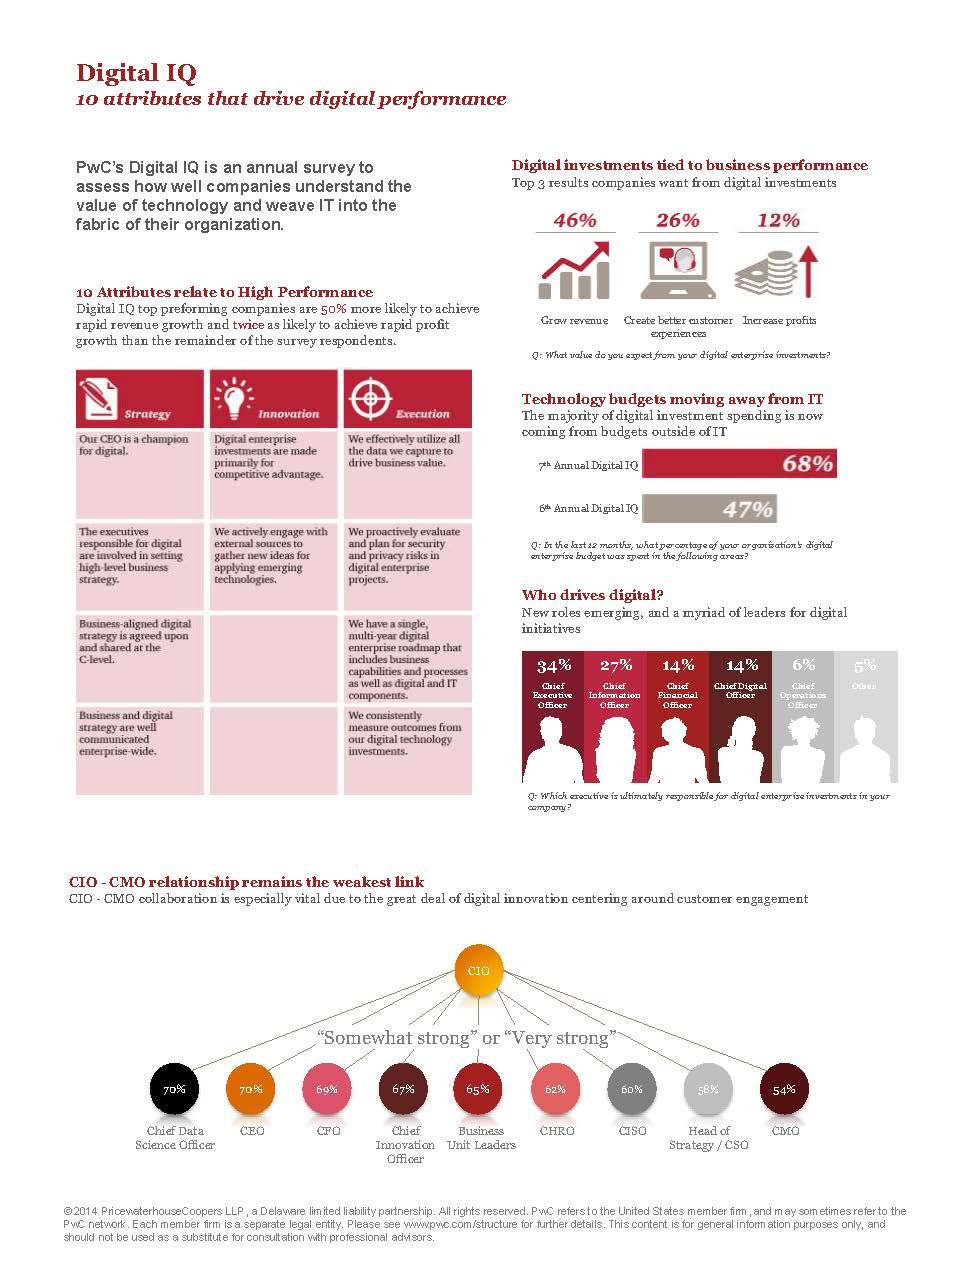 PwC DIQ 2015 overview with graphics